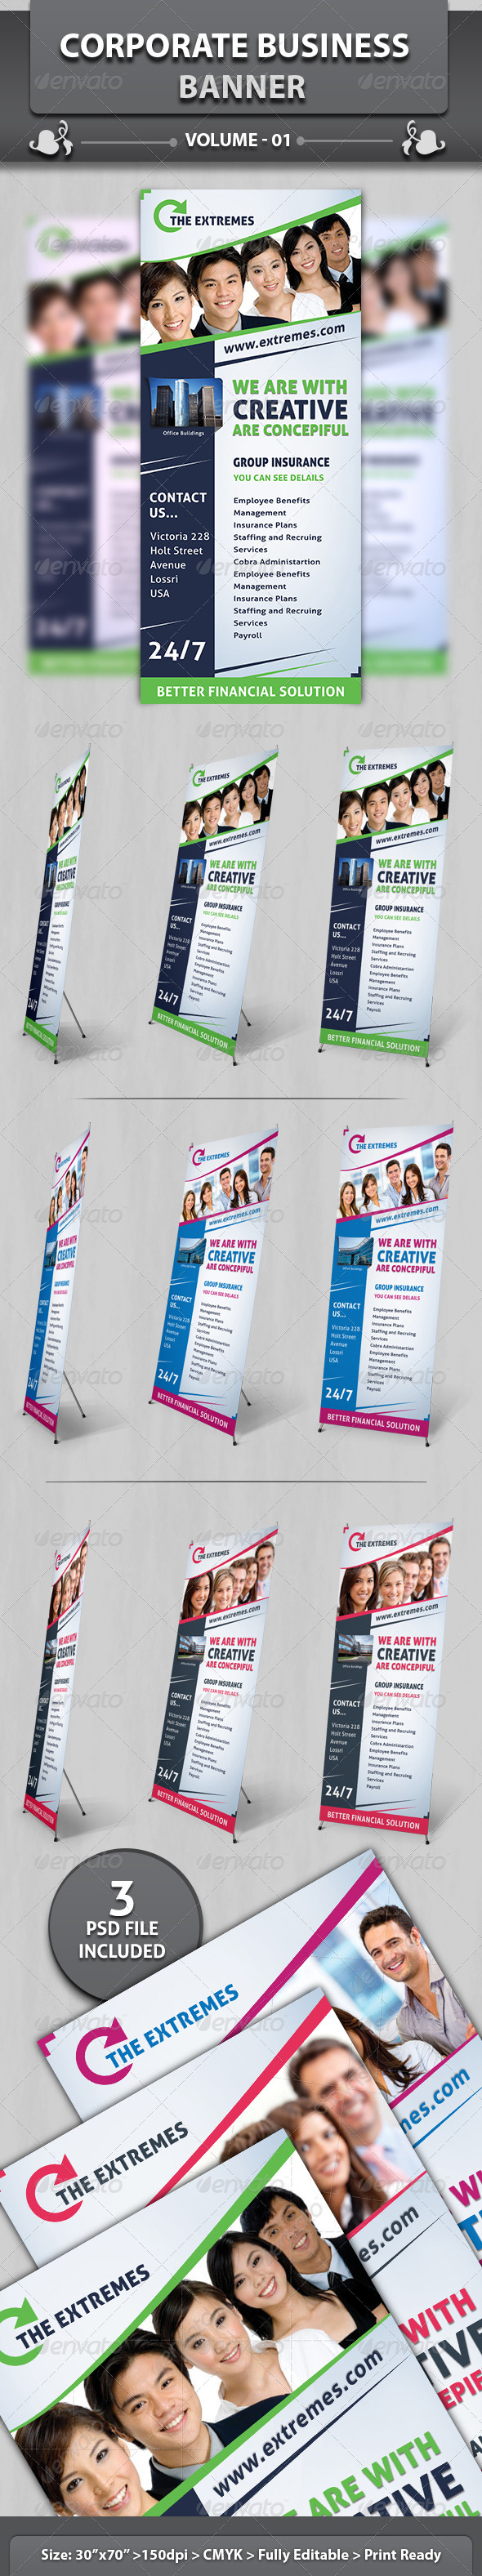 Corporate Business Banner v1 - Signage Print Templates